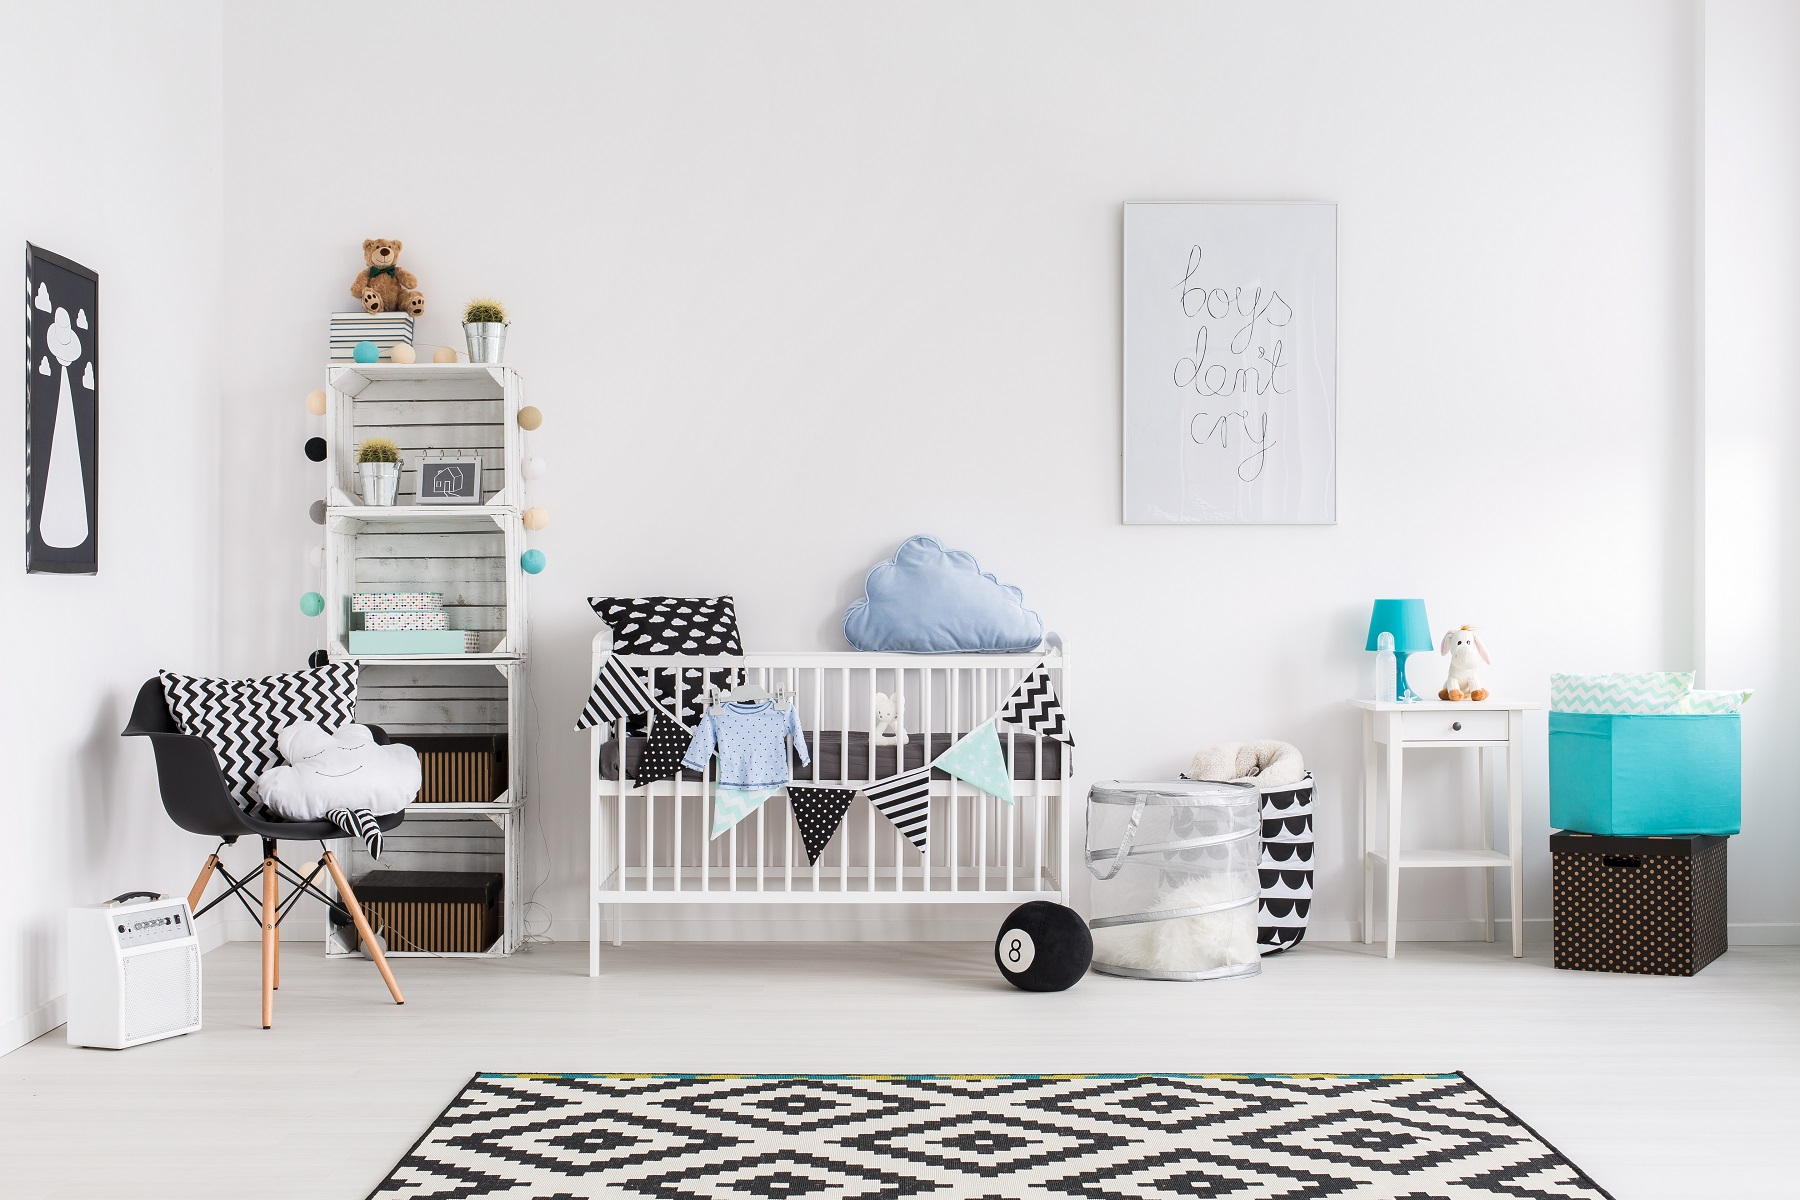 7 Inspiring Kid Room Color Options For Your Little Ones: 19 Stylish Ways To Decorate Your Children's Bedroom